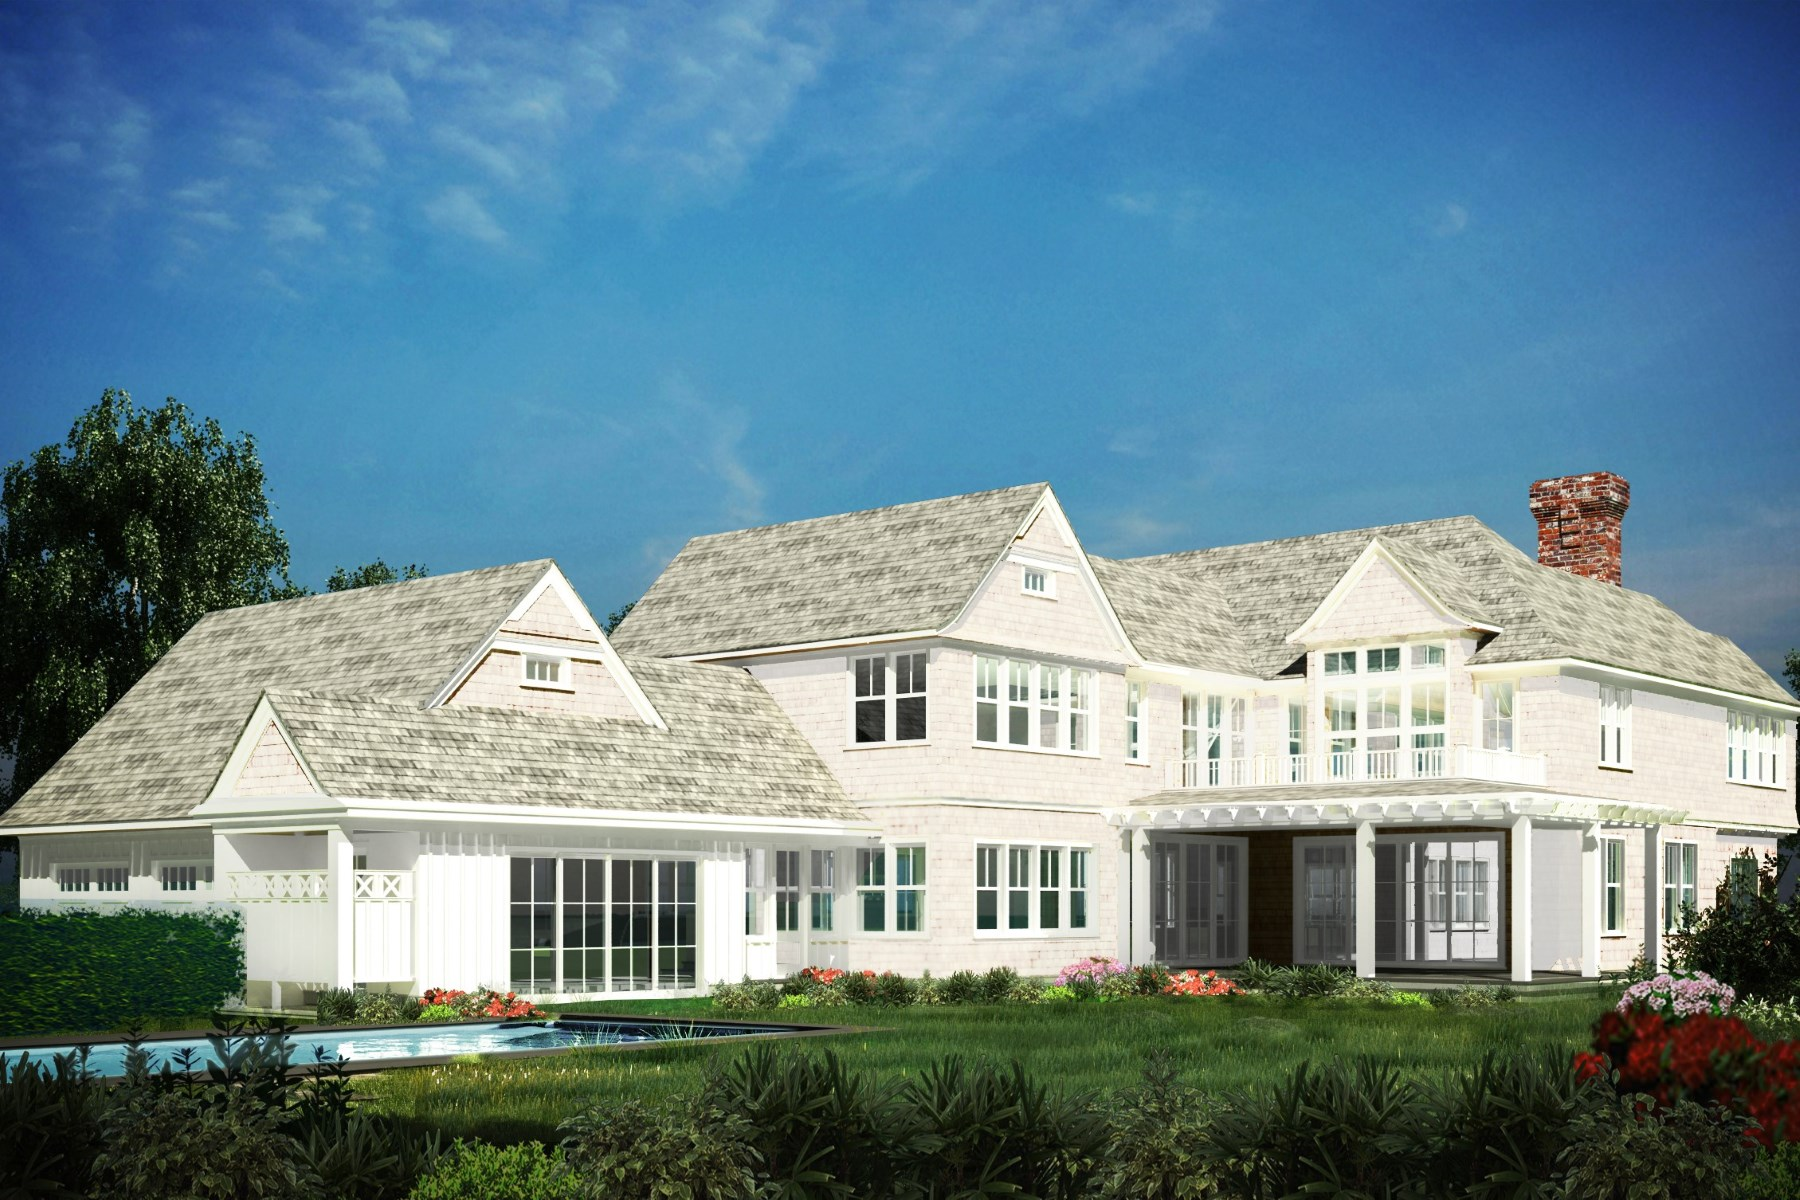 Single Family Home for Sale at Southampton Village New Construction 20 Downs Path Southampton Estate Section, Southampton, New York, 11968 United States